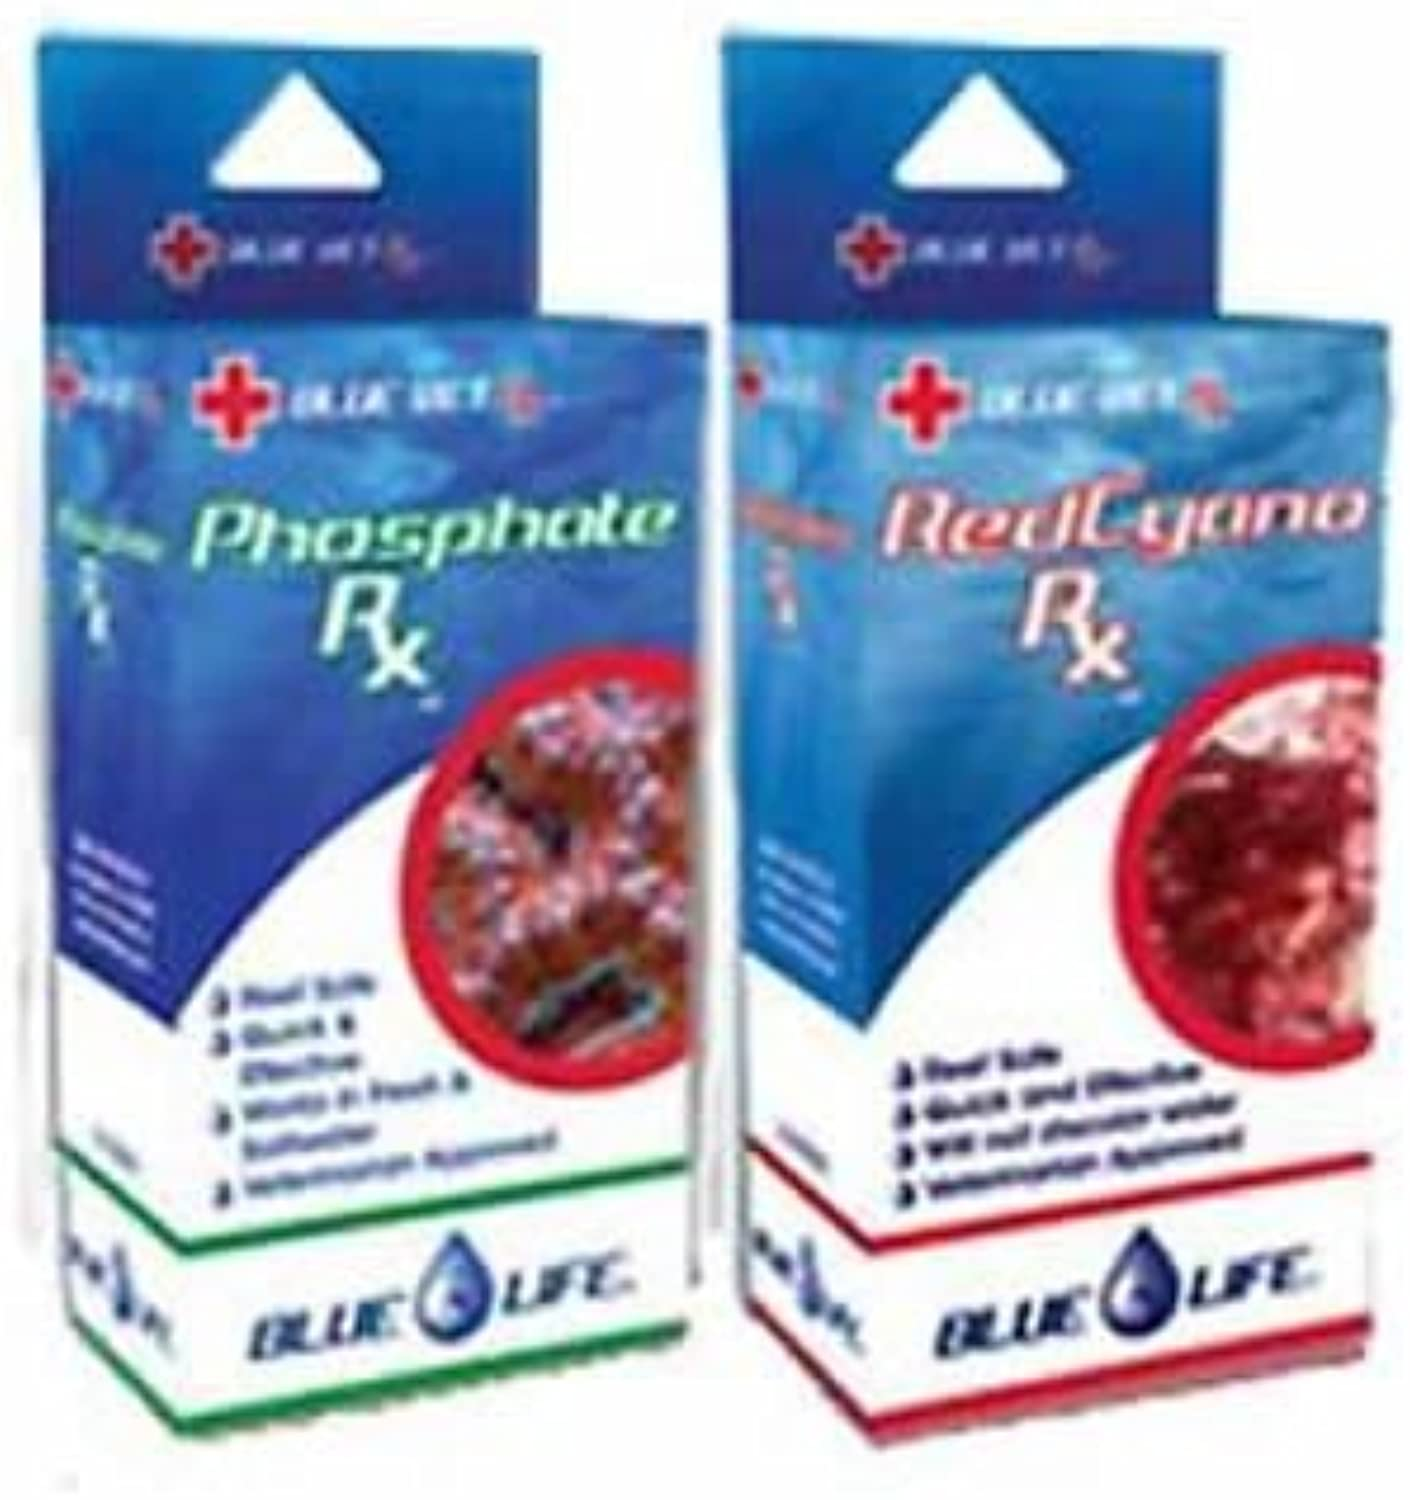 bluee Life Red Slime Rx & Phosphate Rx Combo Pack